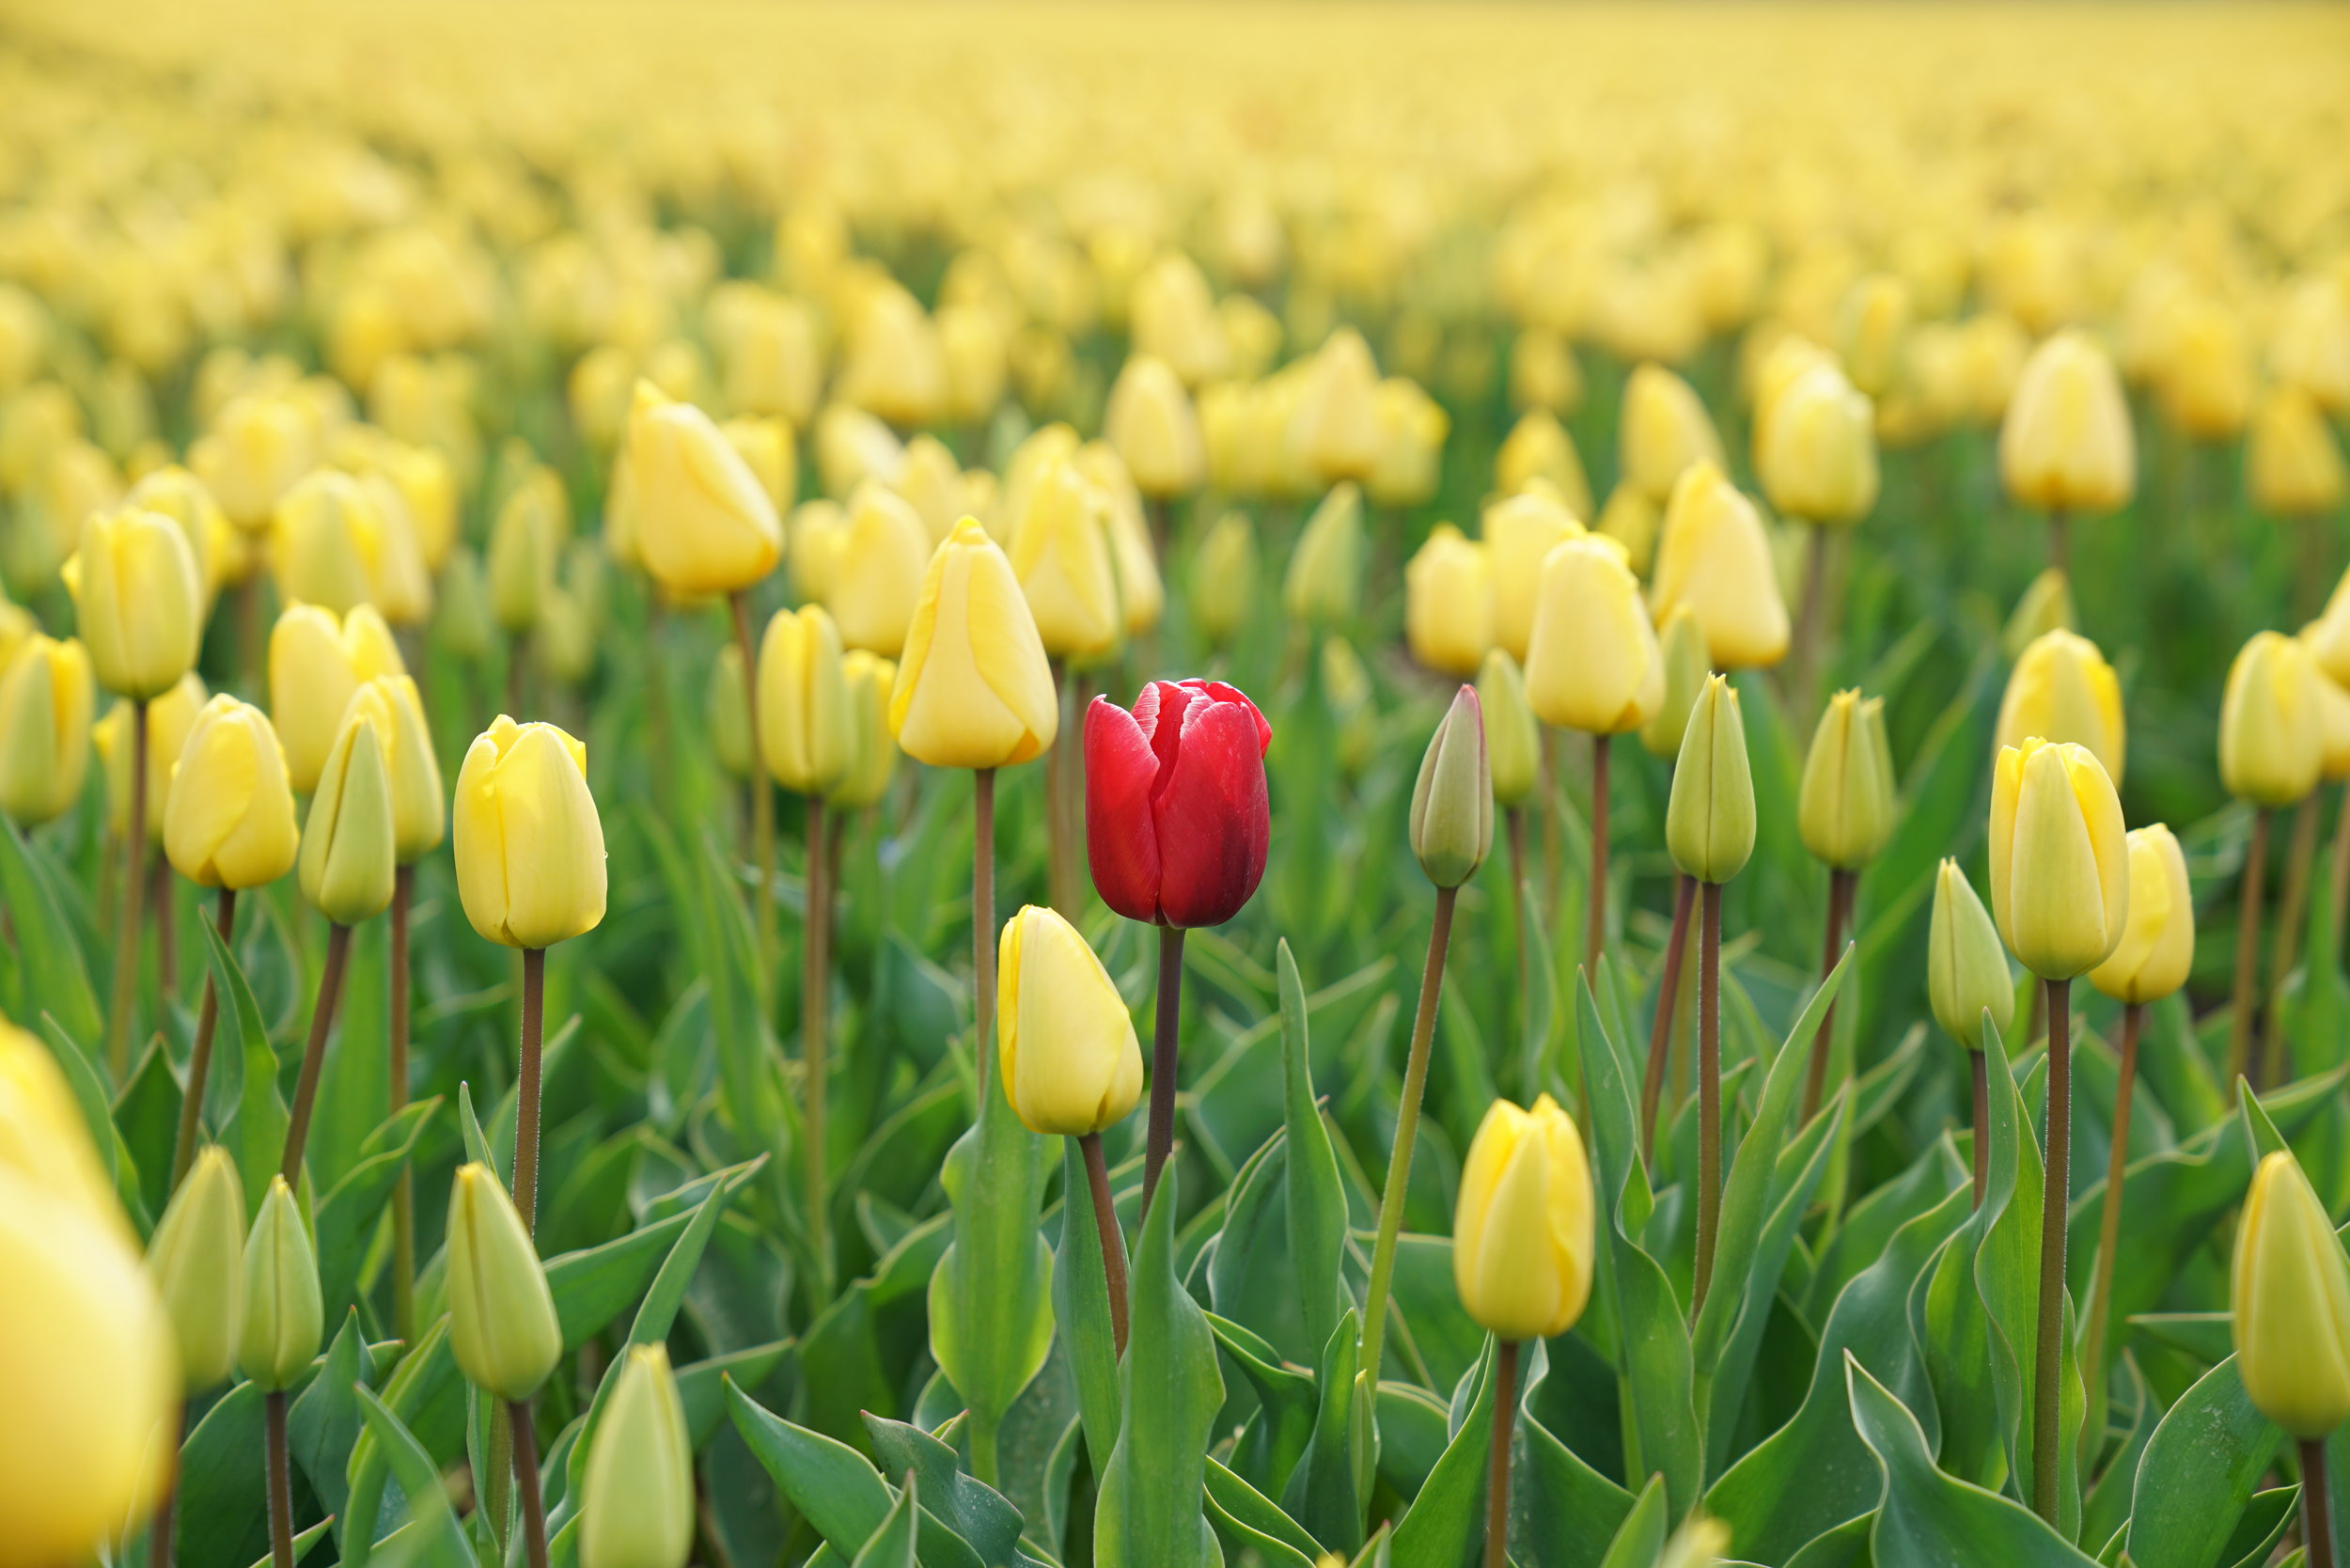 Be the red tulip in a sea of yellows!